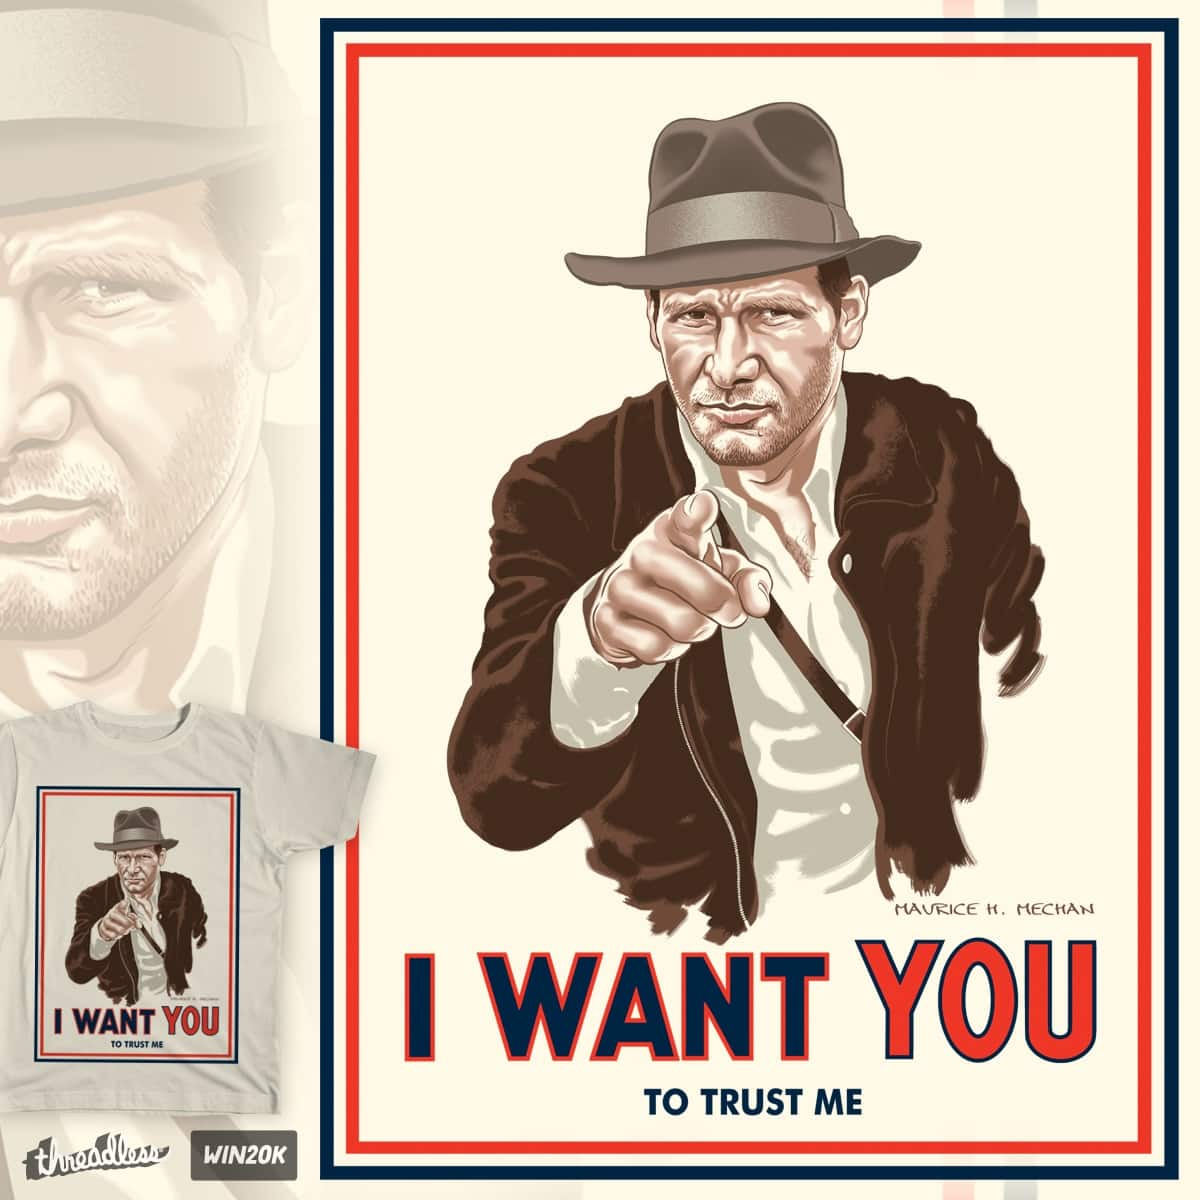 INDY WANTS YOU by Momech on Threadless